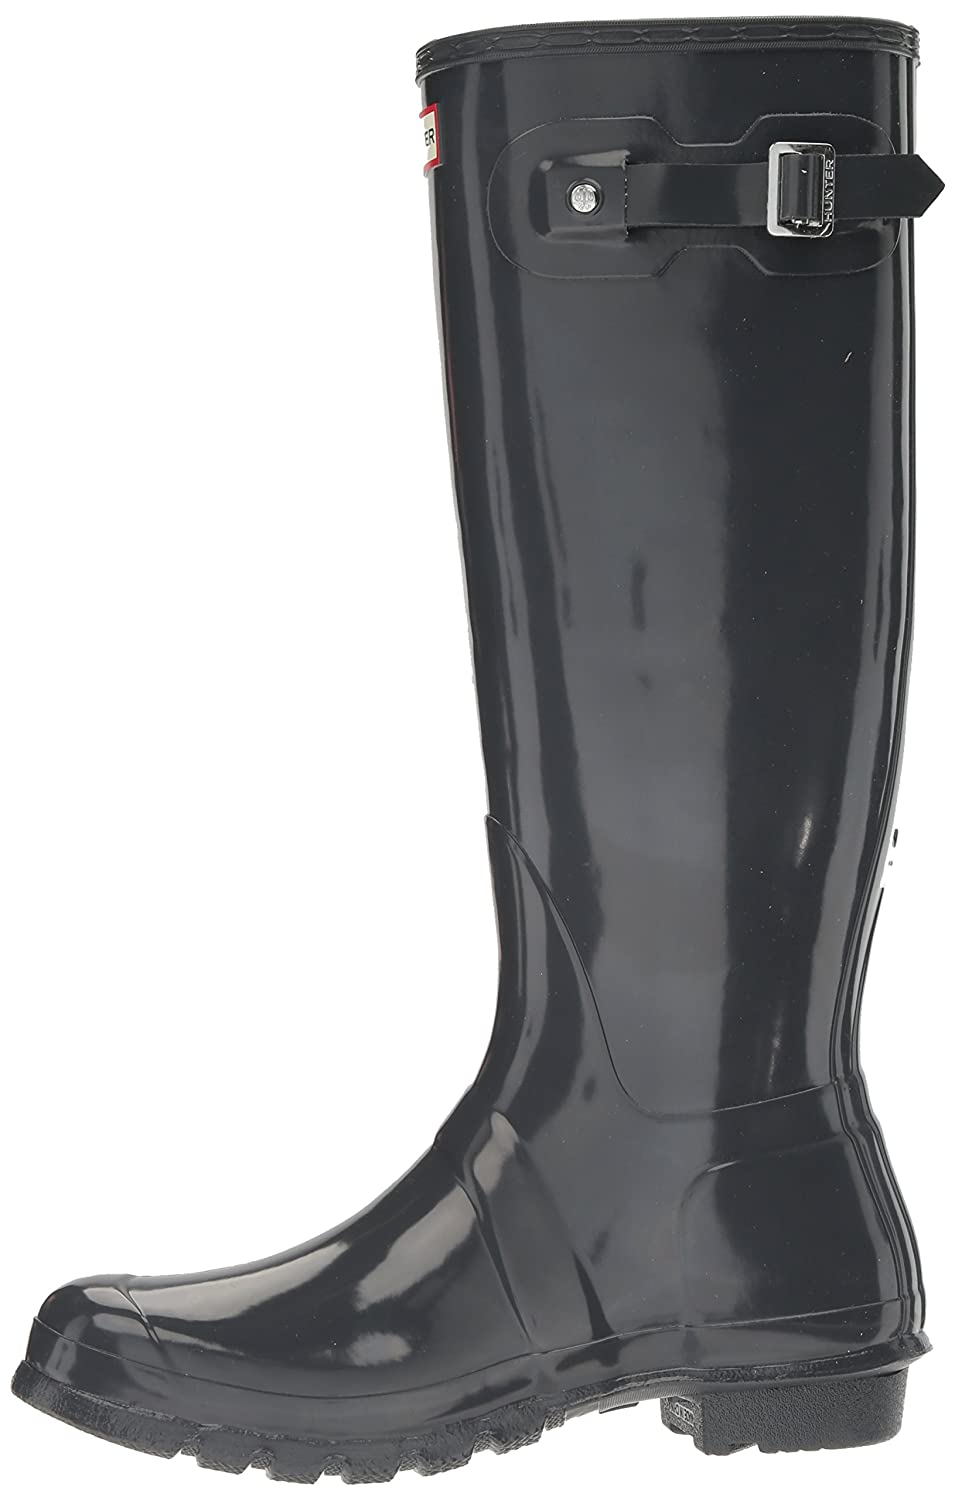 Hunter Women's Original 7 Tall Rain Boot B01N9O42PW 7 Original B(M) US|Dark Slate b0d3d5